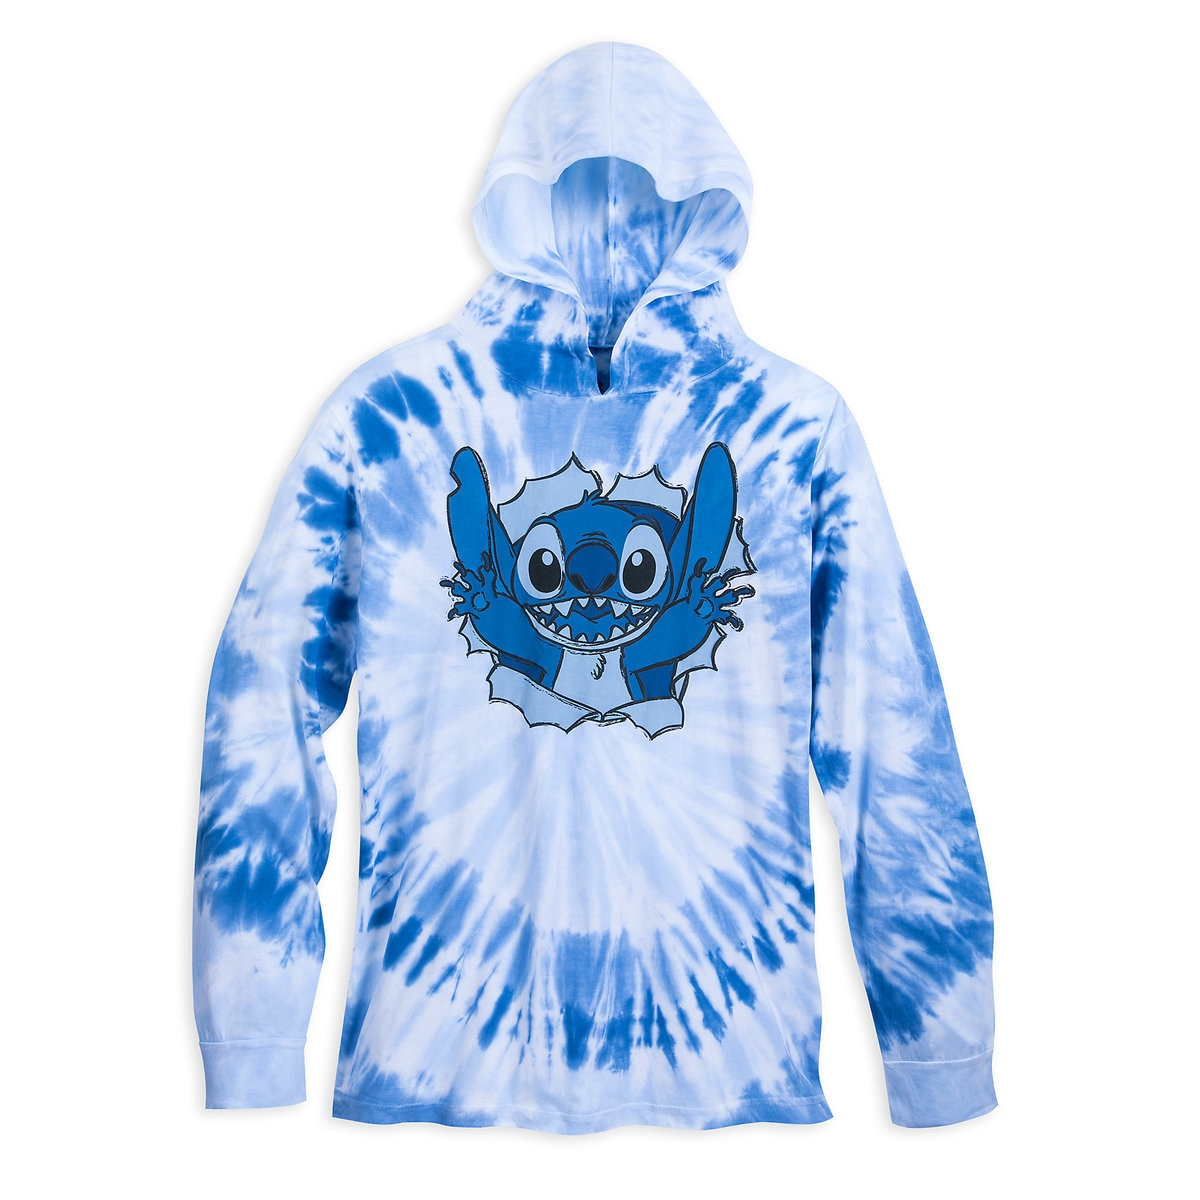 8a4341a35a61 Product Image of Stitch Long Sleeve Hooded Tie-Dye T-Shirt for Adults #